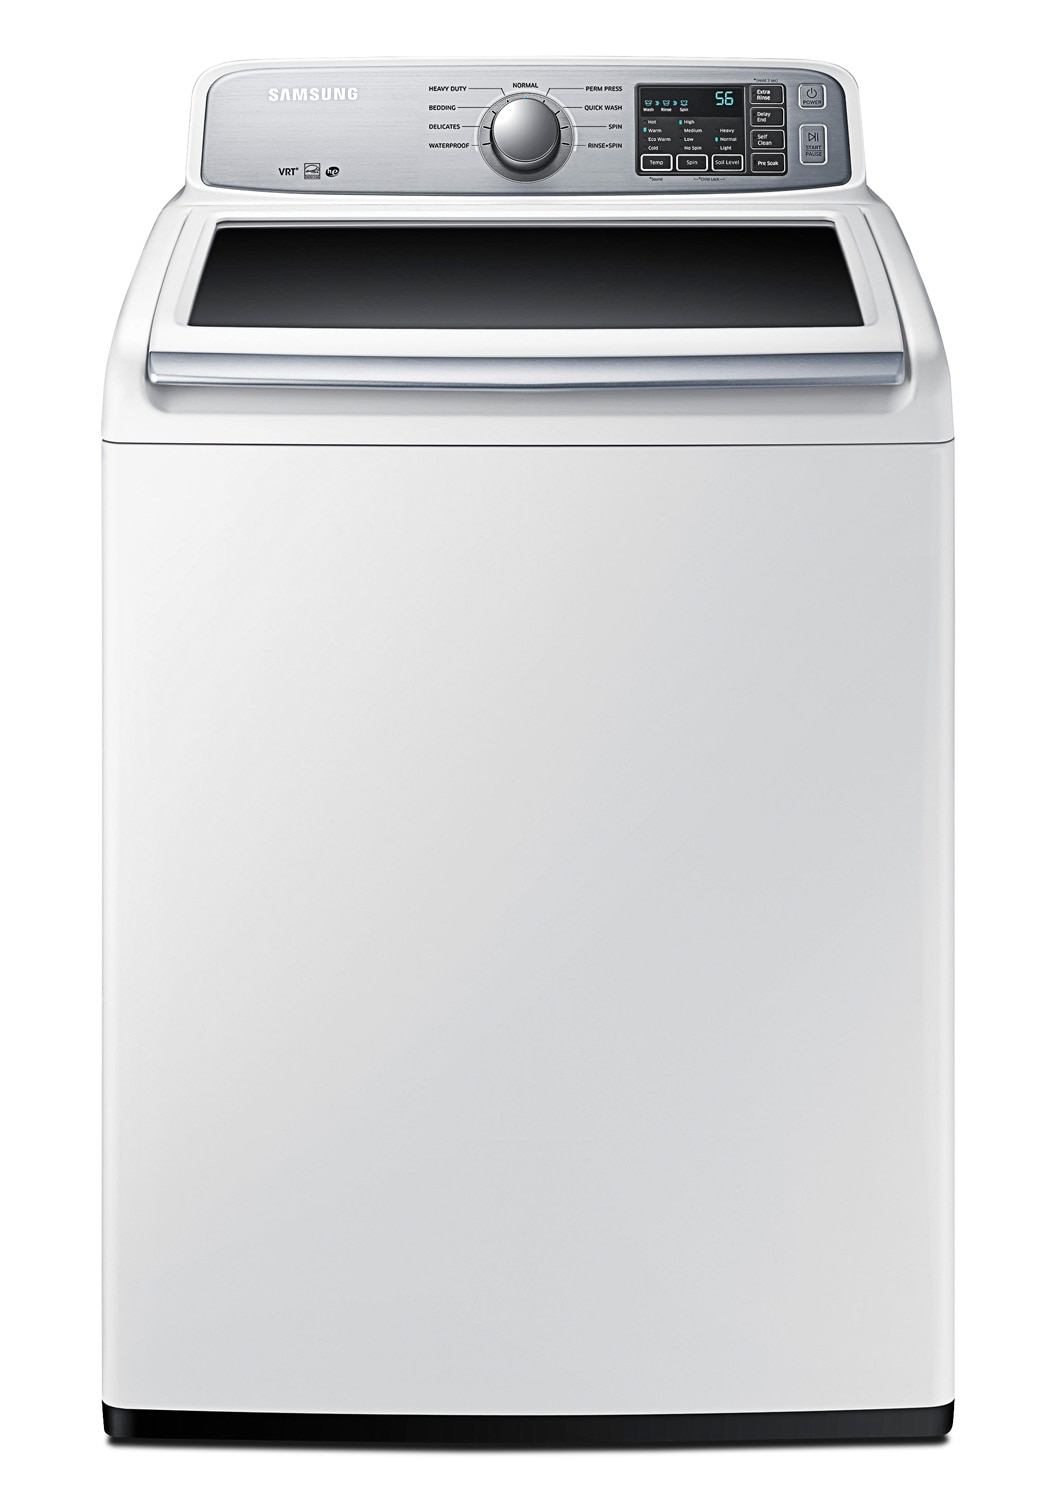 Samsung White Top-Load Washer  (5.2 Cu. Ft. IEC) - WA45H7000AW